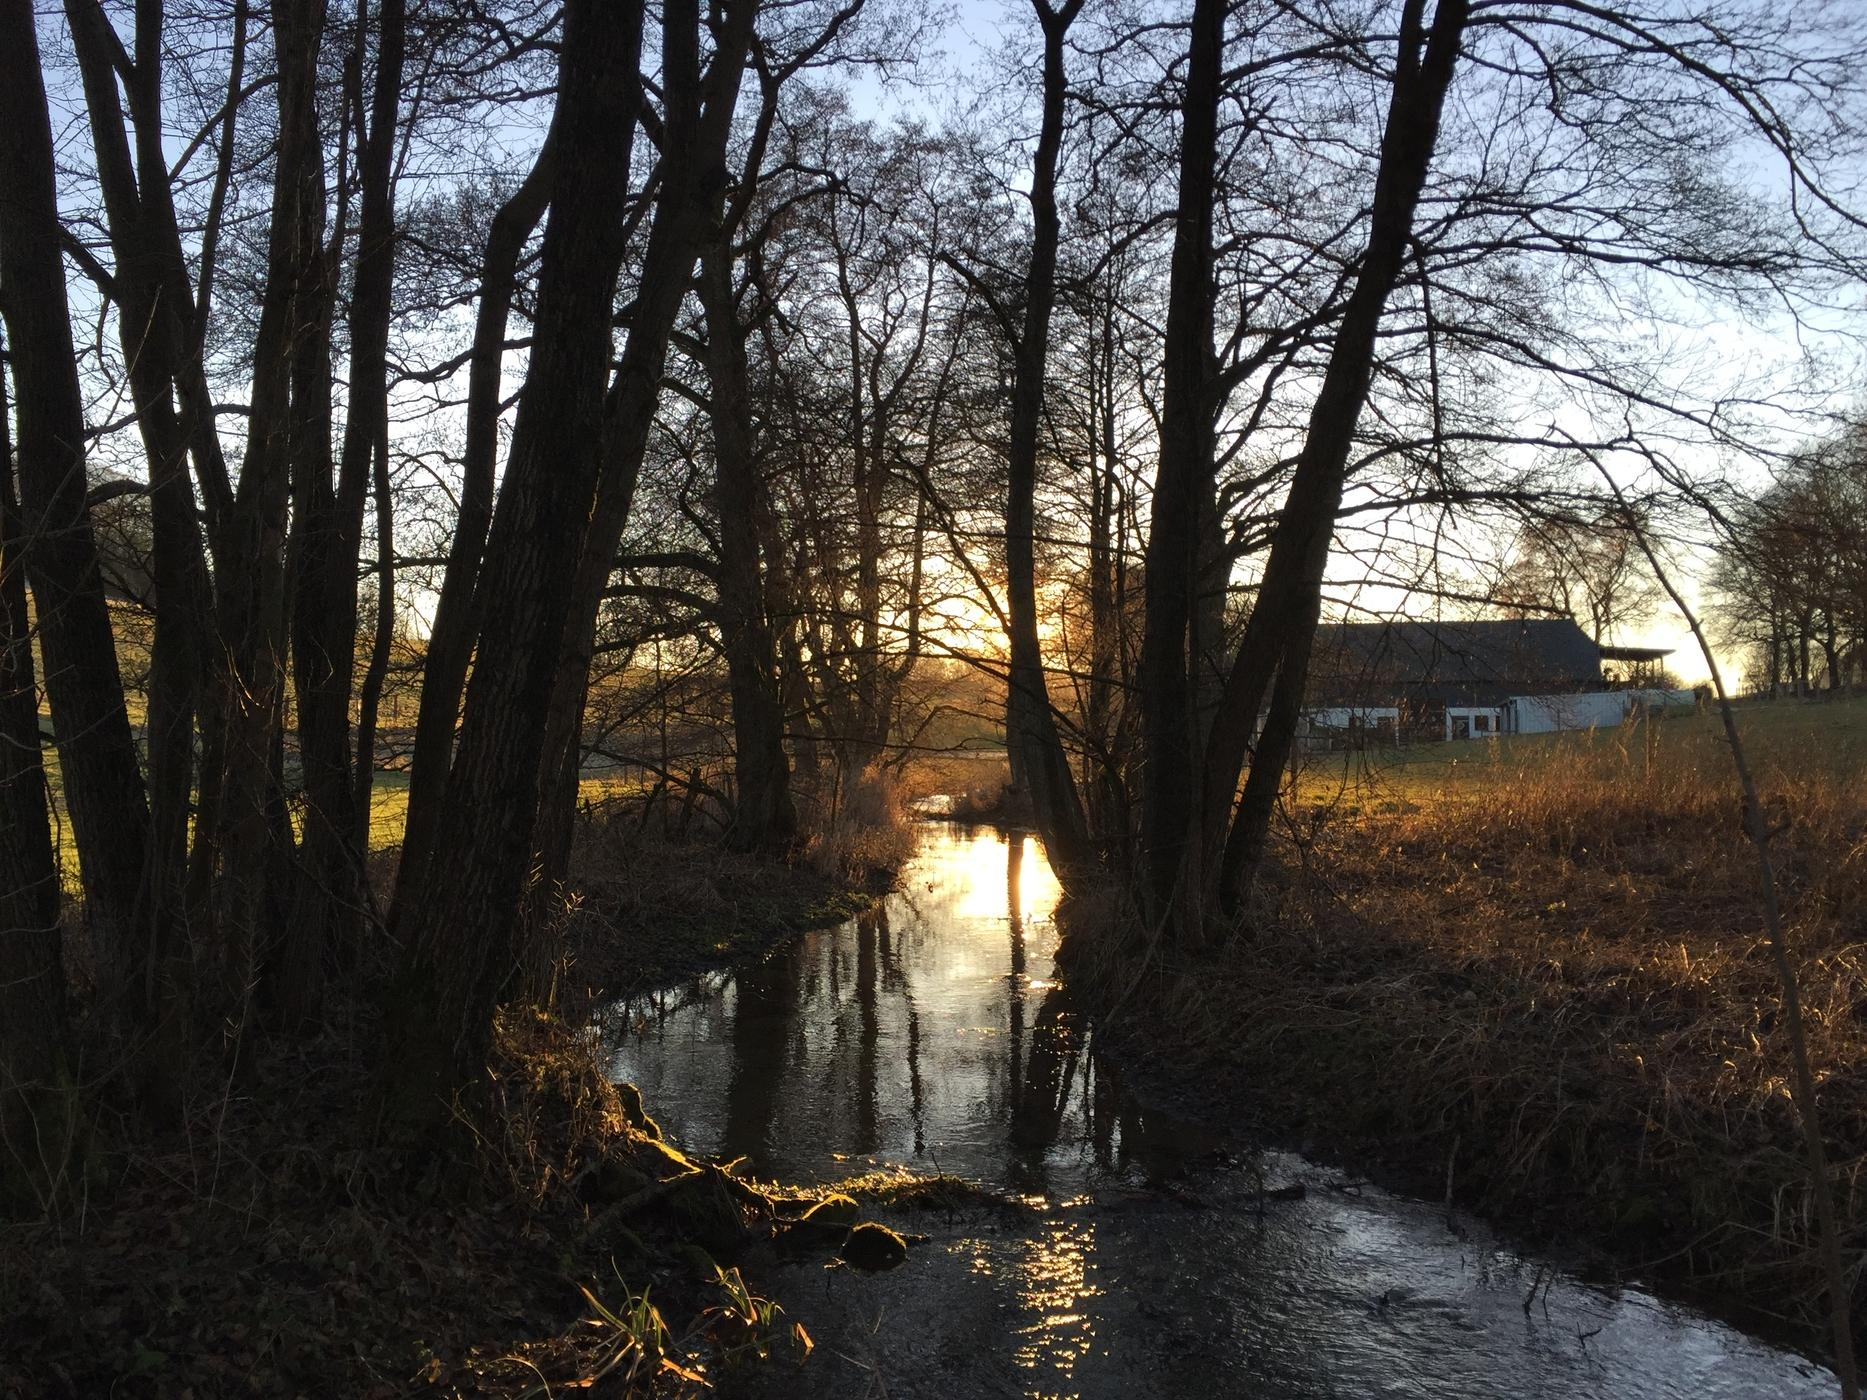 Sunset at a stream